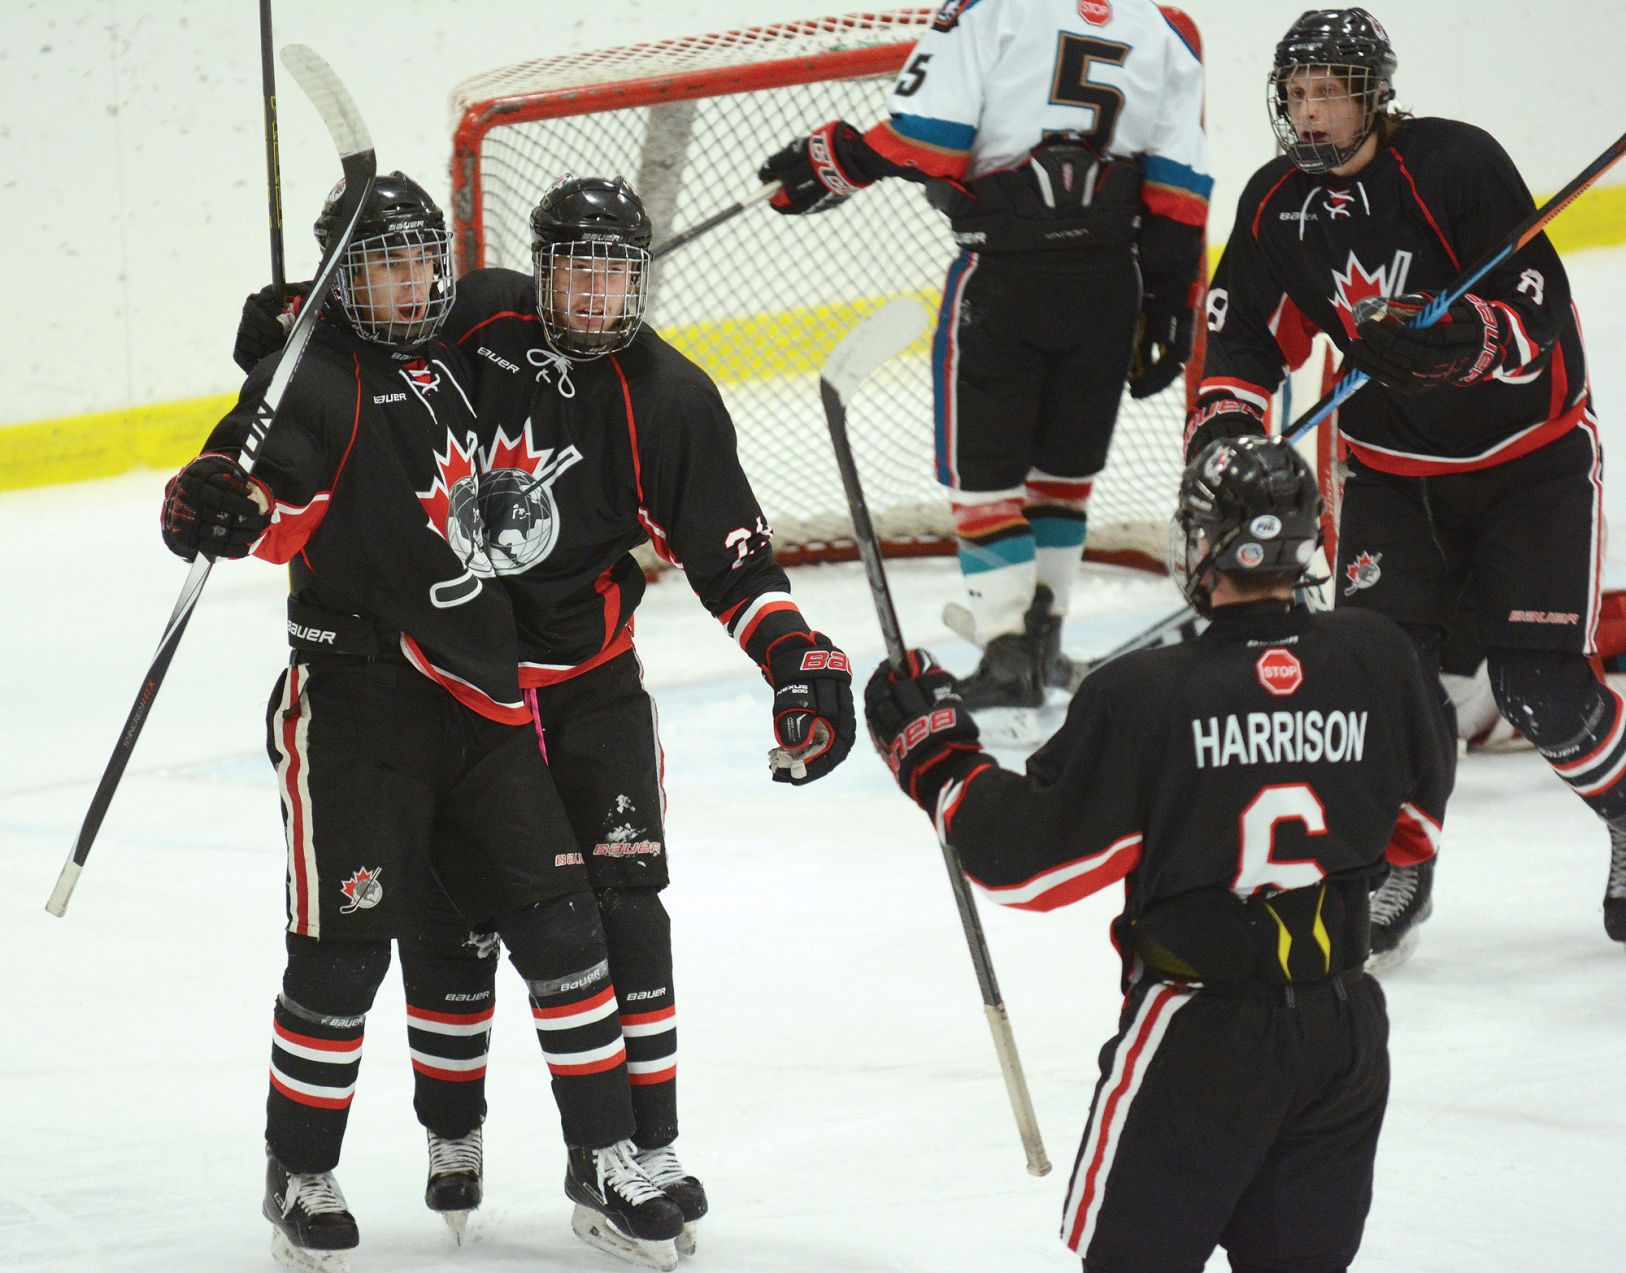 best of Midget hockey Kelowna